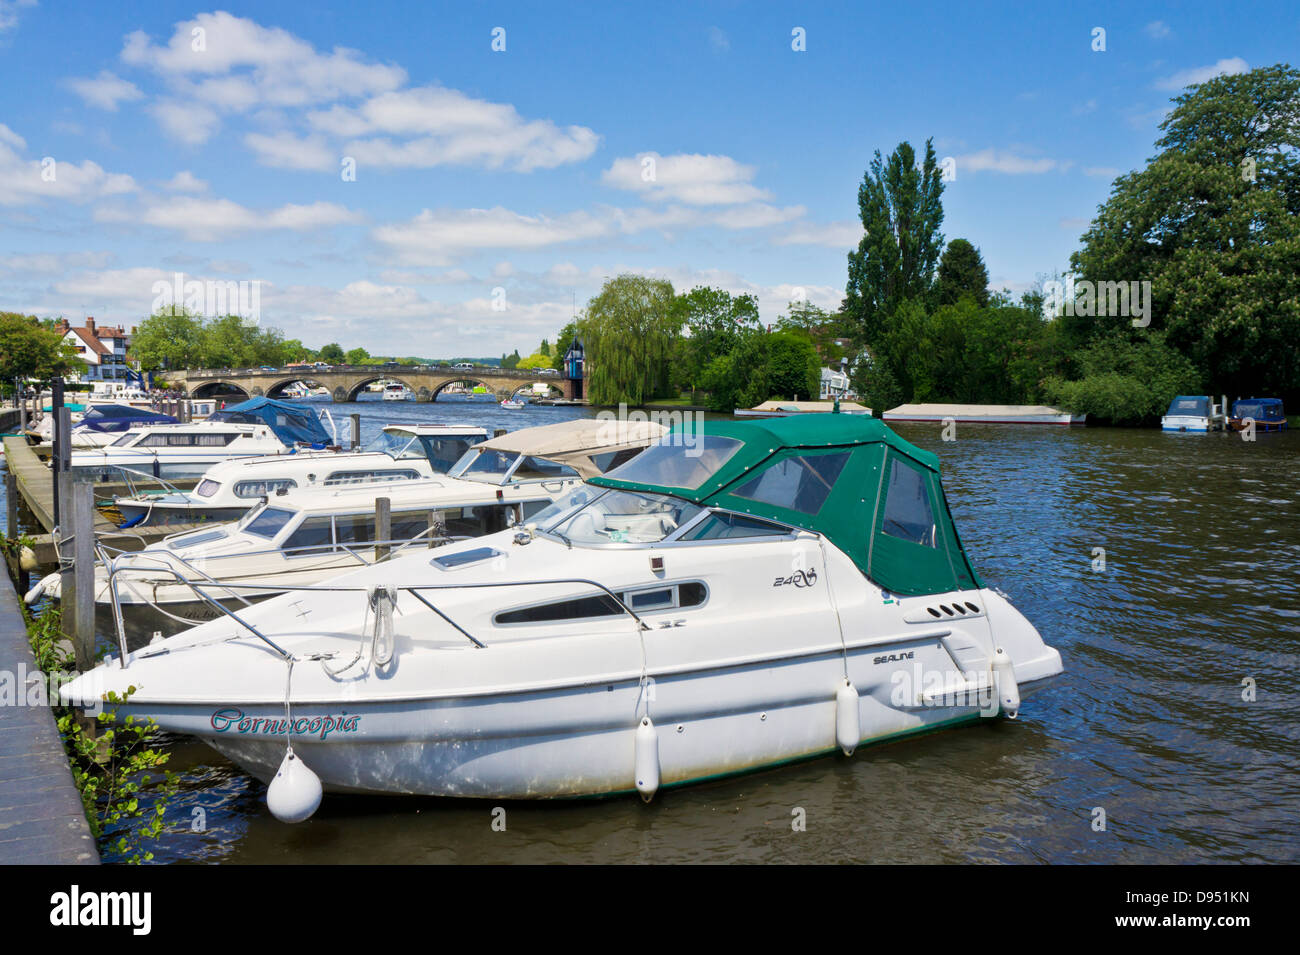 Motorboats moored by the side of the river Thames at Henley-on-Thames Oxfordshire England UK GB EU Europe - Stock Image